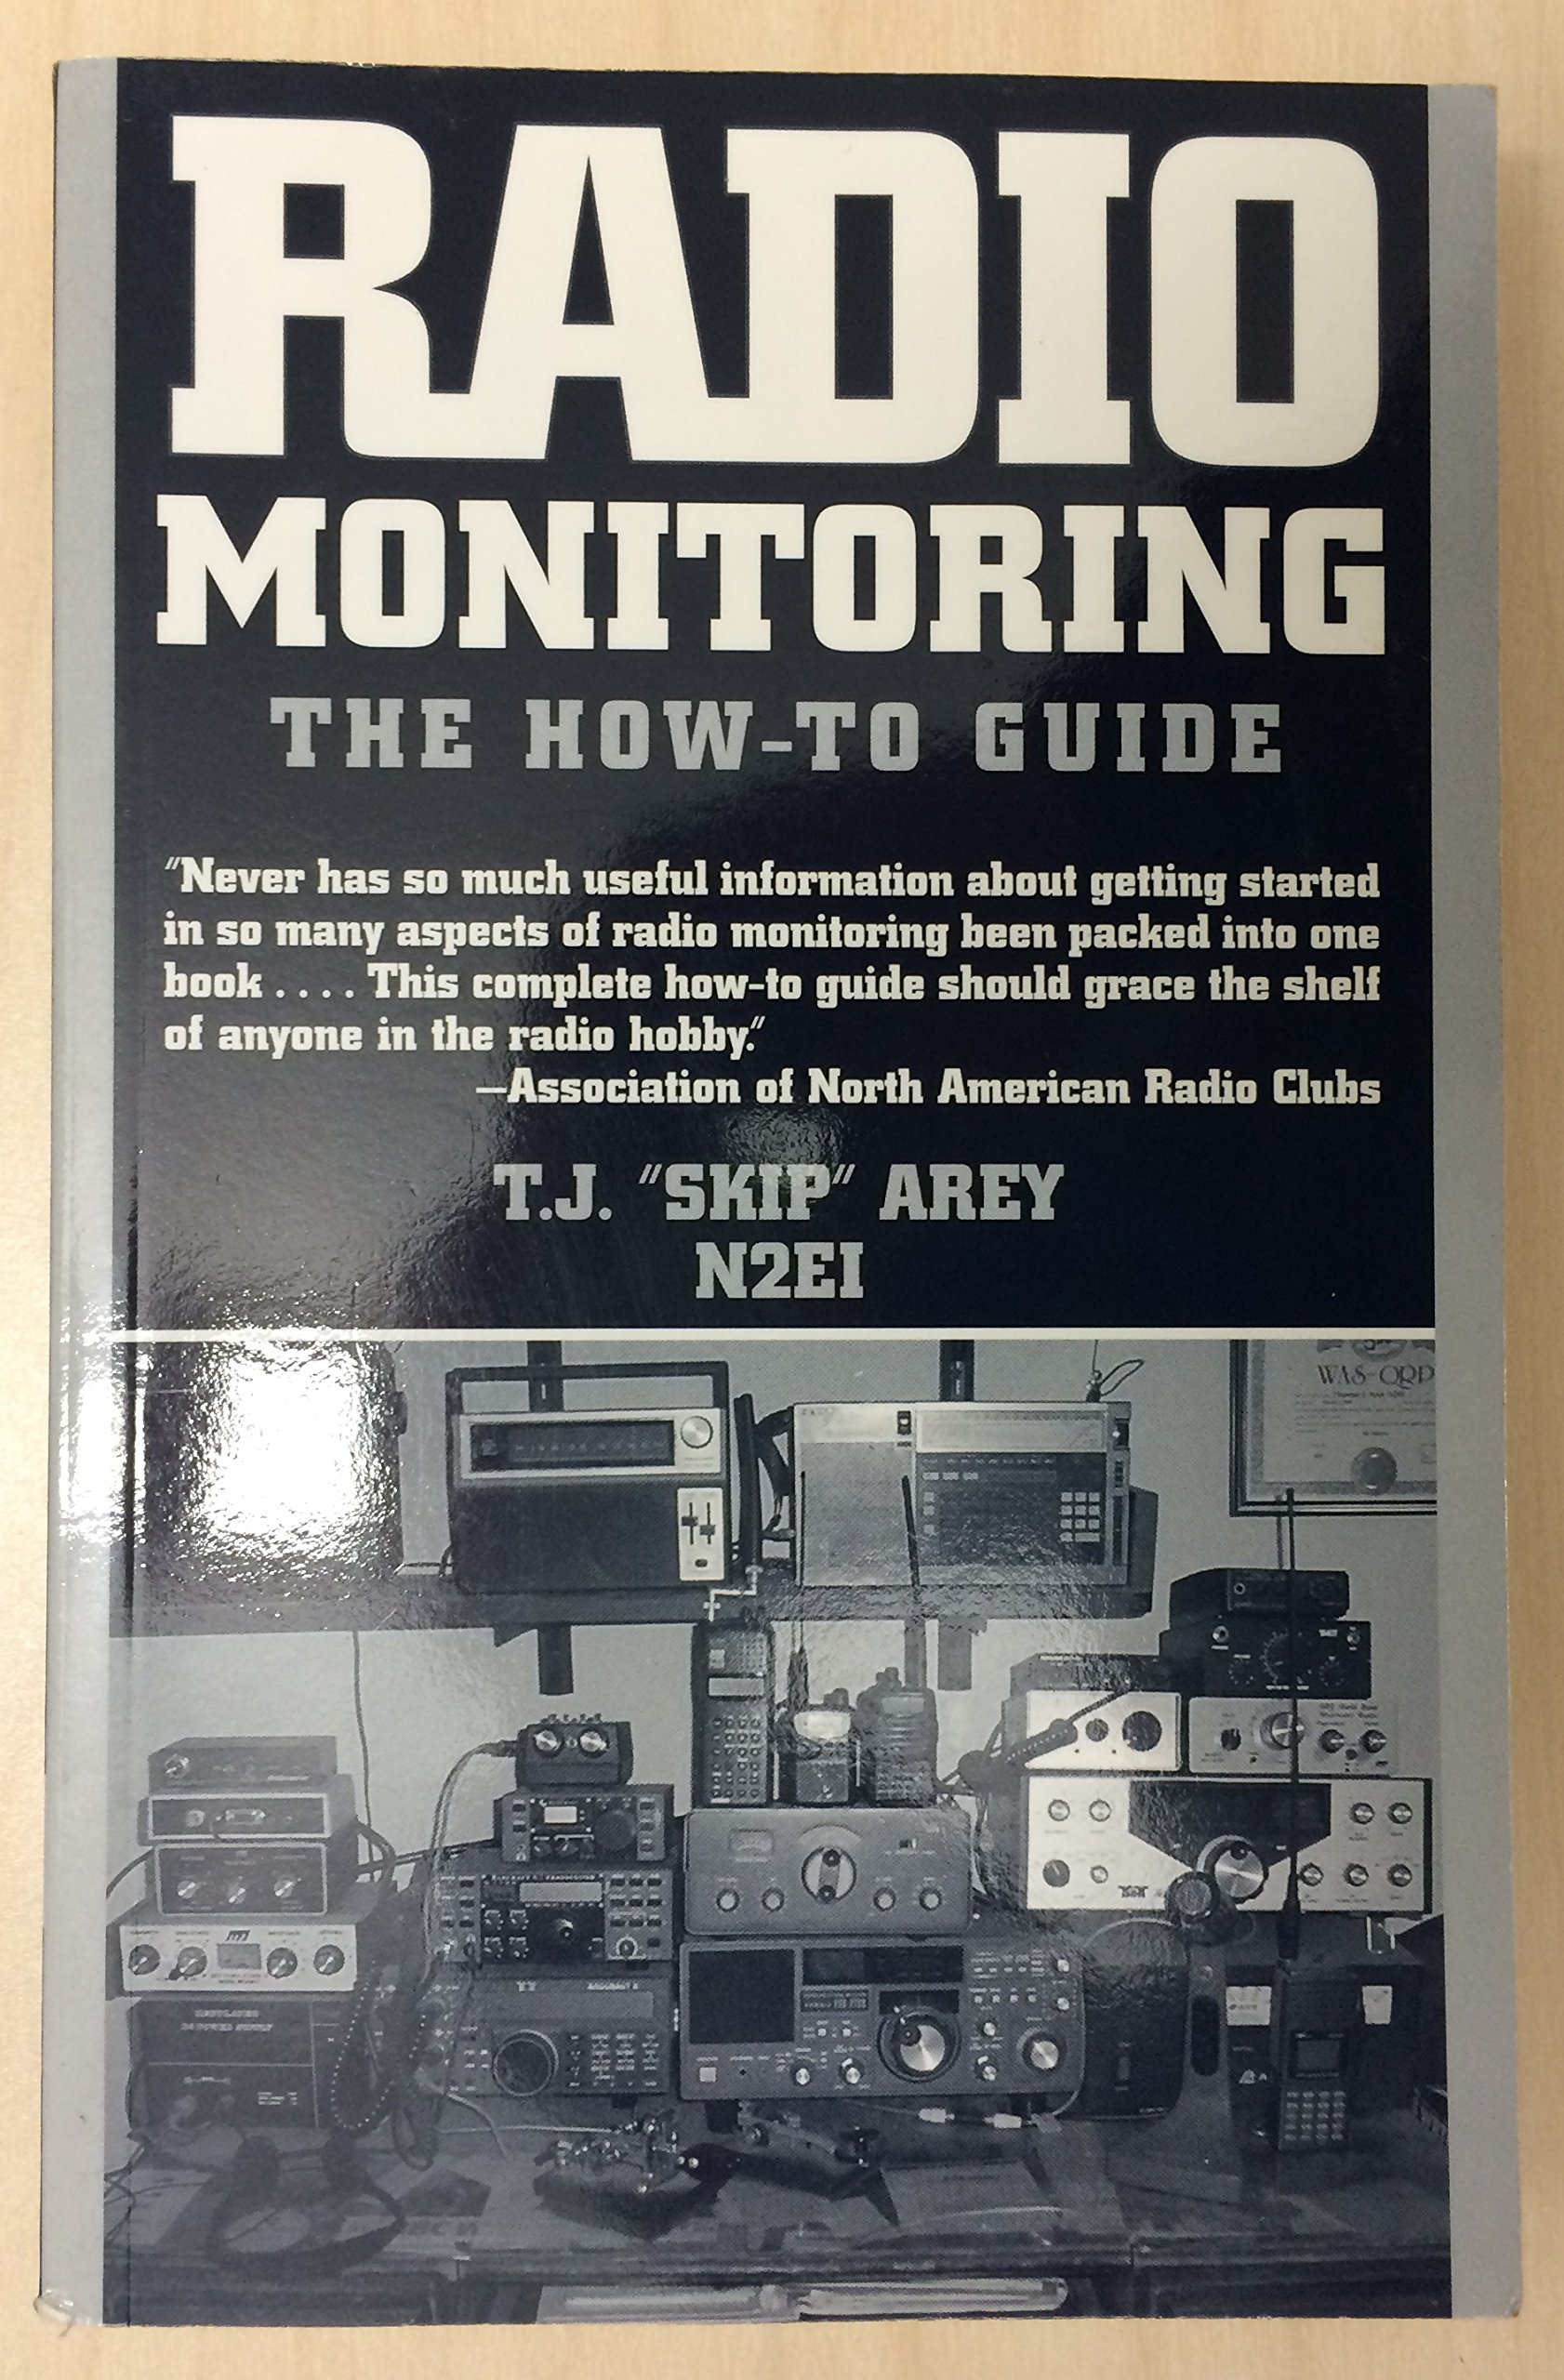 Radio Monitoring: The How-To Guide ePub fb2 book